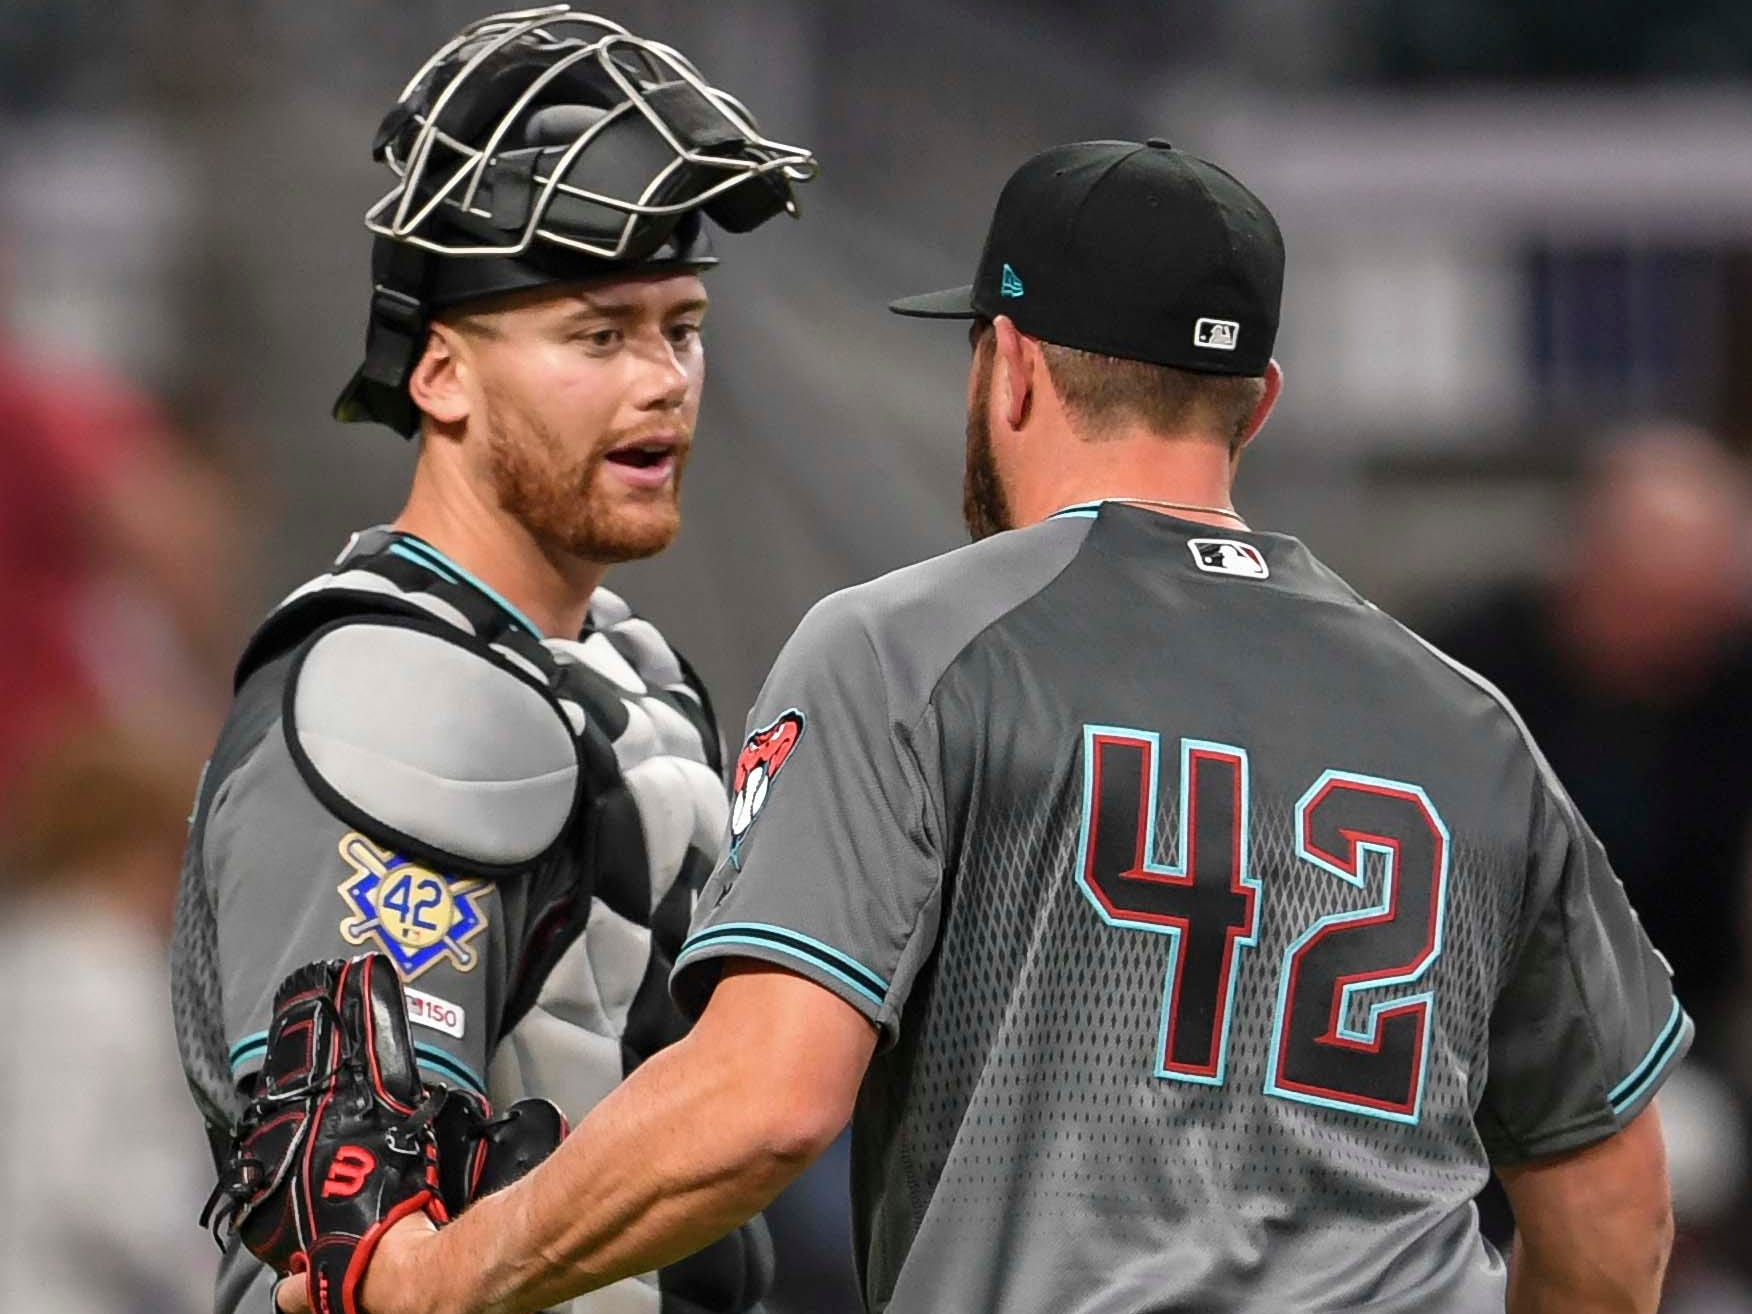 Apr 16, 2019; Atlanta, GA, USA; Arizona Diamondbacks relief pitcher Greg Holland (56) reacts with catcher Carson Kelly (18) after defeating the Atlanta Braves at SunTrust Park. Mandatory Credit: Dale Zanine-USA TODAY Sports